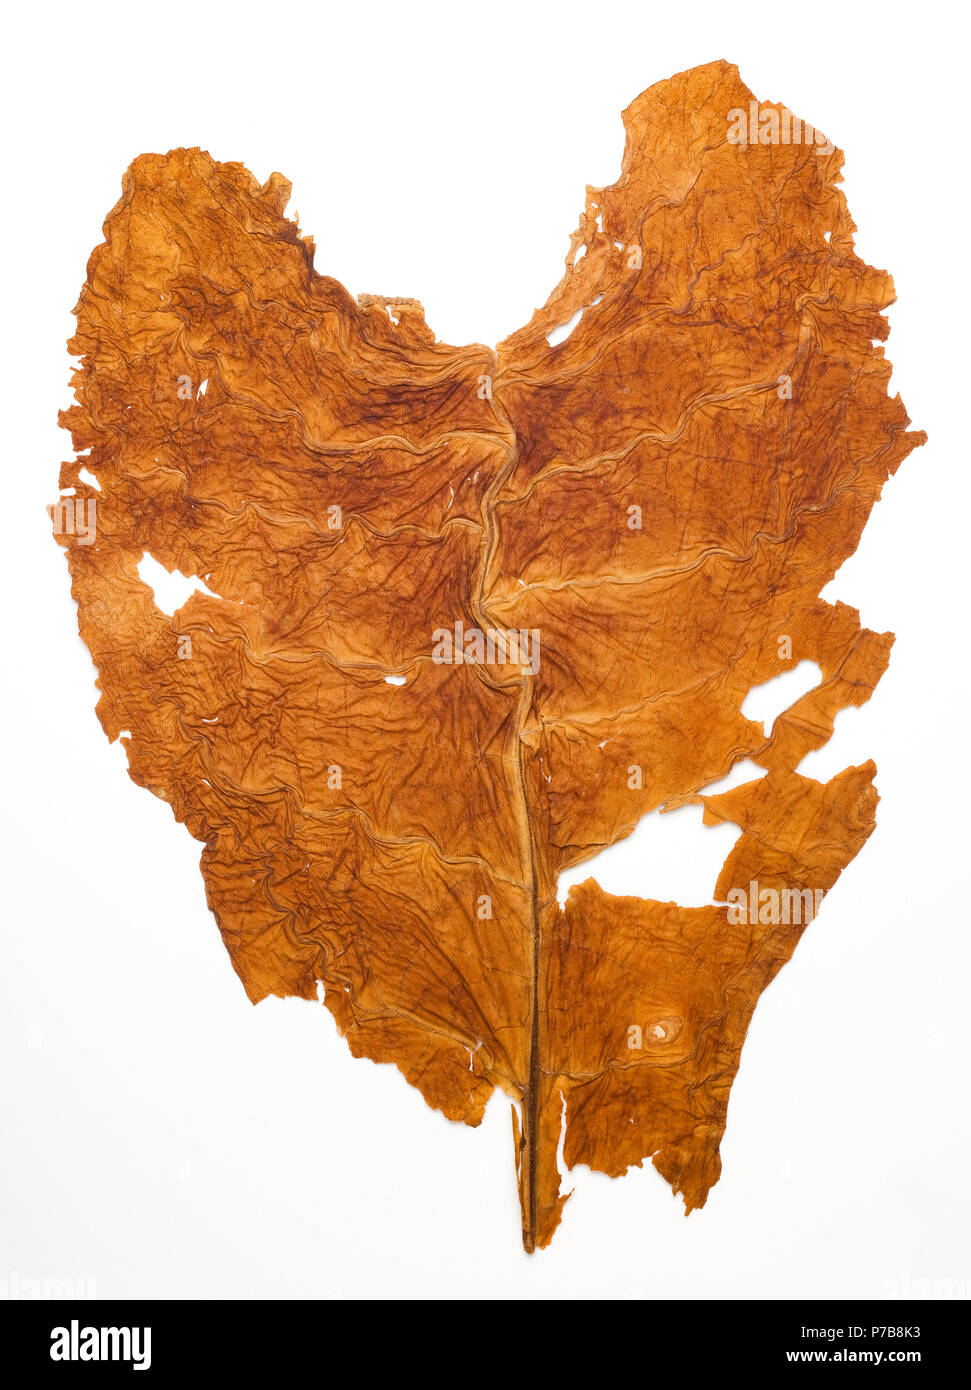 A 1943 heart shaped souvenir tobacco leaf collected in North Carolina during World War II.  The leaf has been pressed flat in a photo album since 1943 - Stock Image